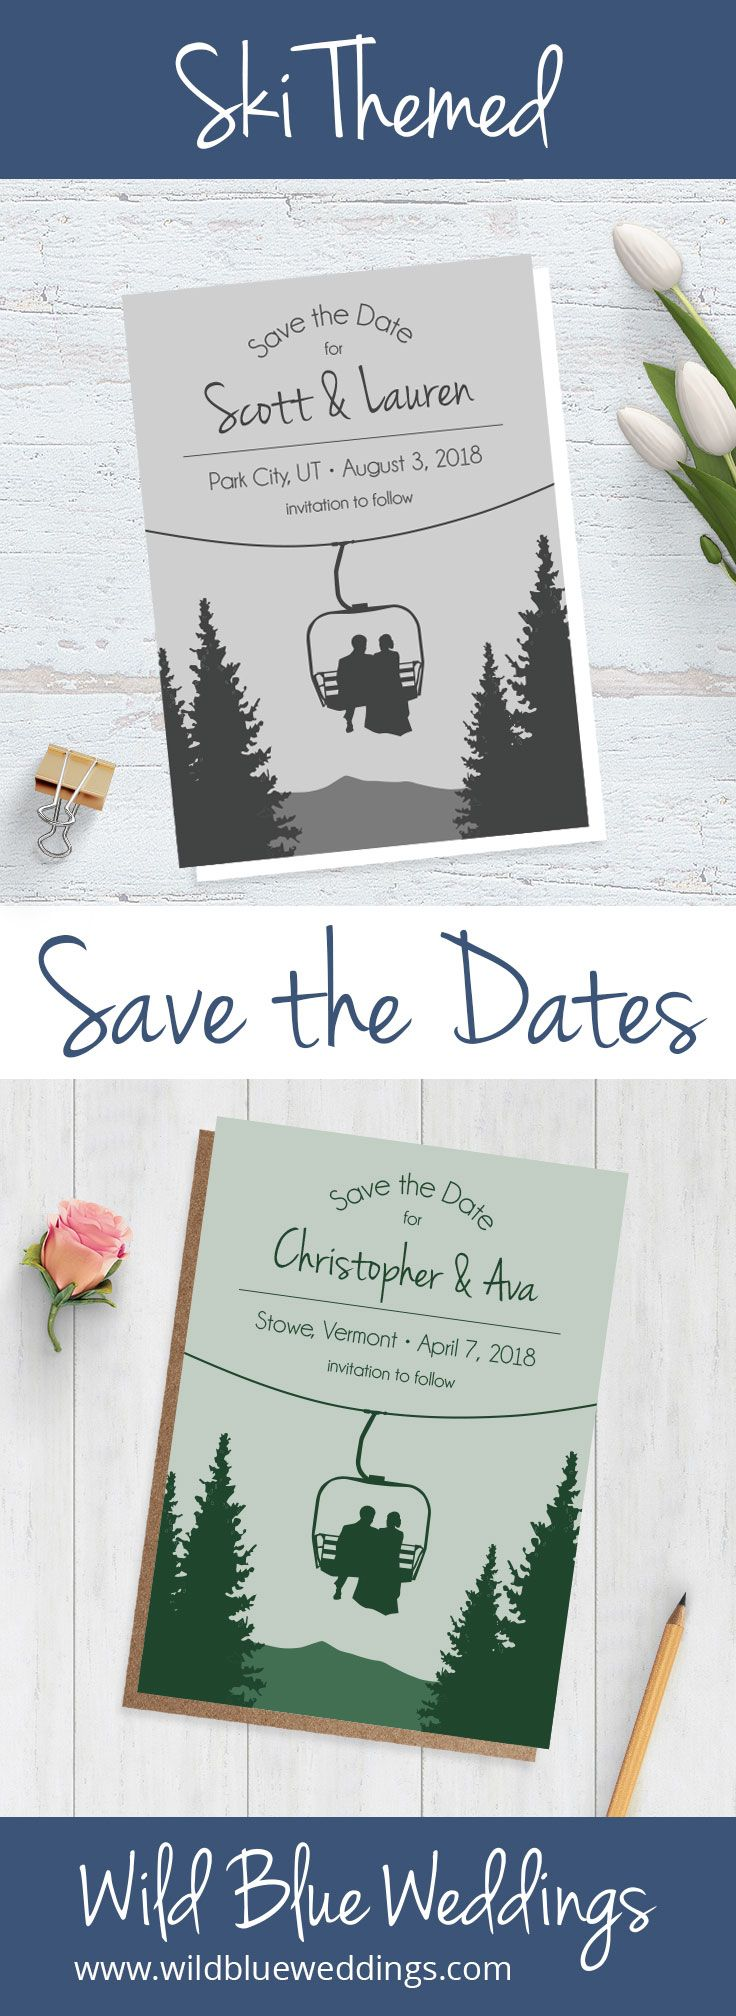 destination wedding save the dates and invitations%0A Hit the slopes with these adorable ski themed wedding save the dates    skiwedding